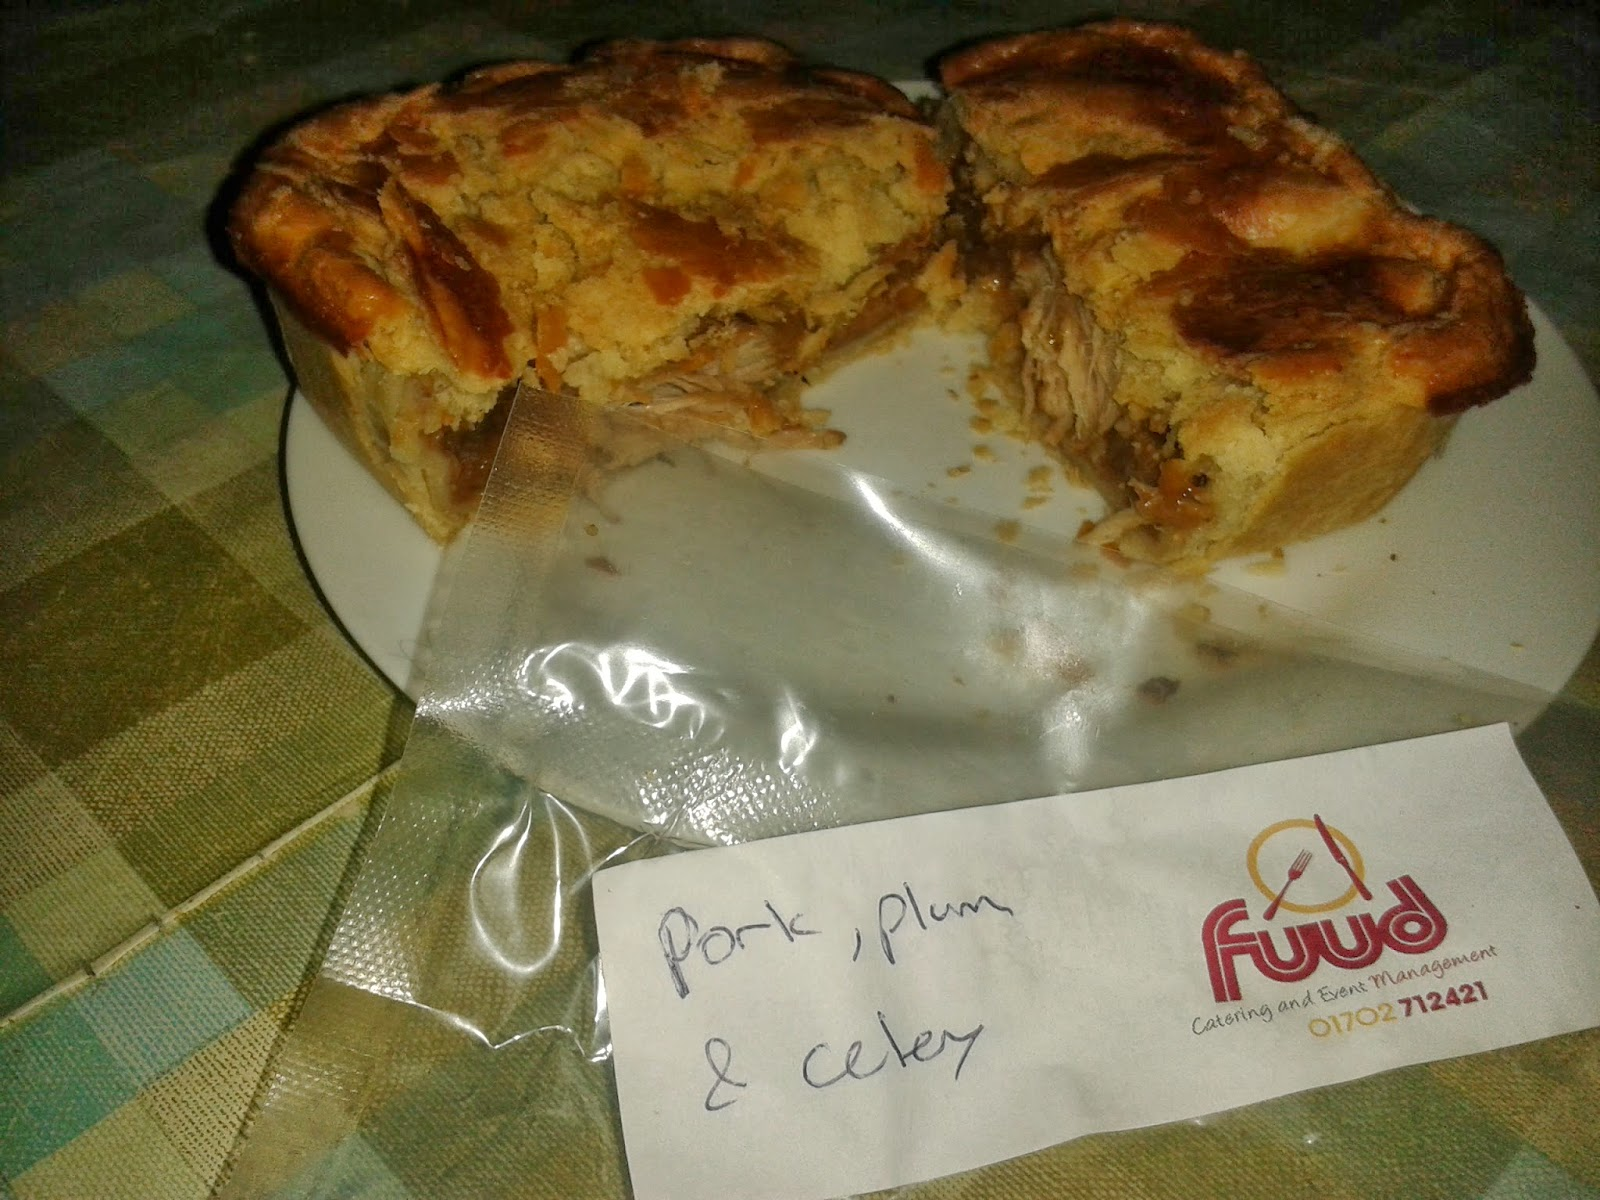 Fuud Pork, Plum and Celery Pie Review